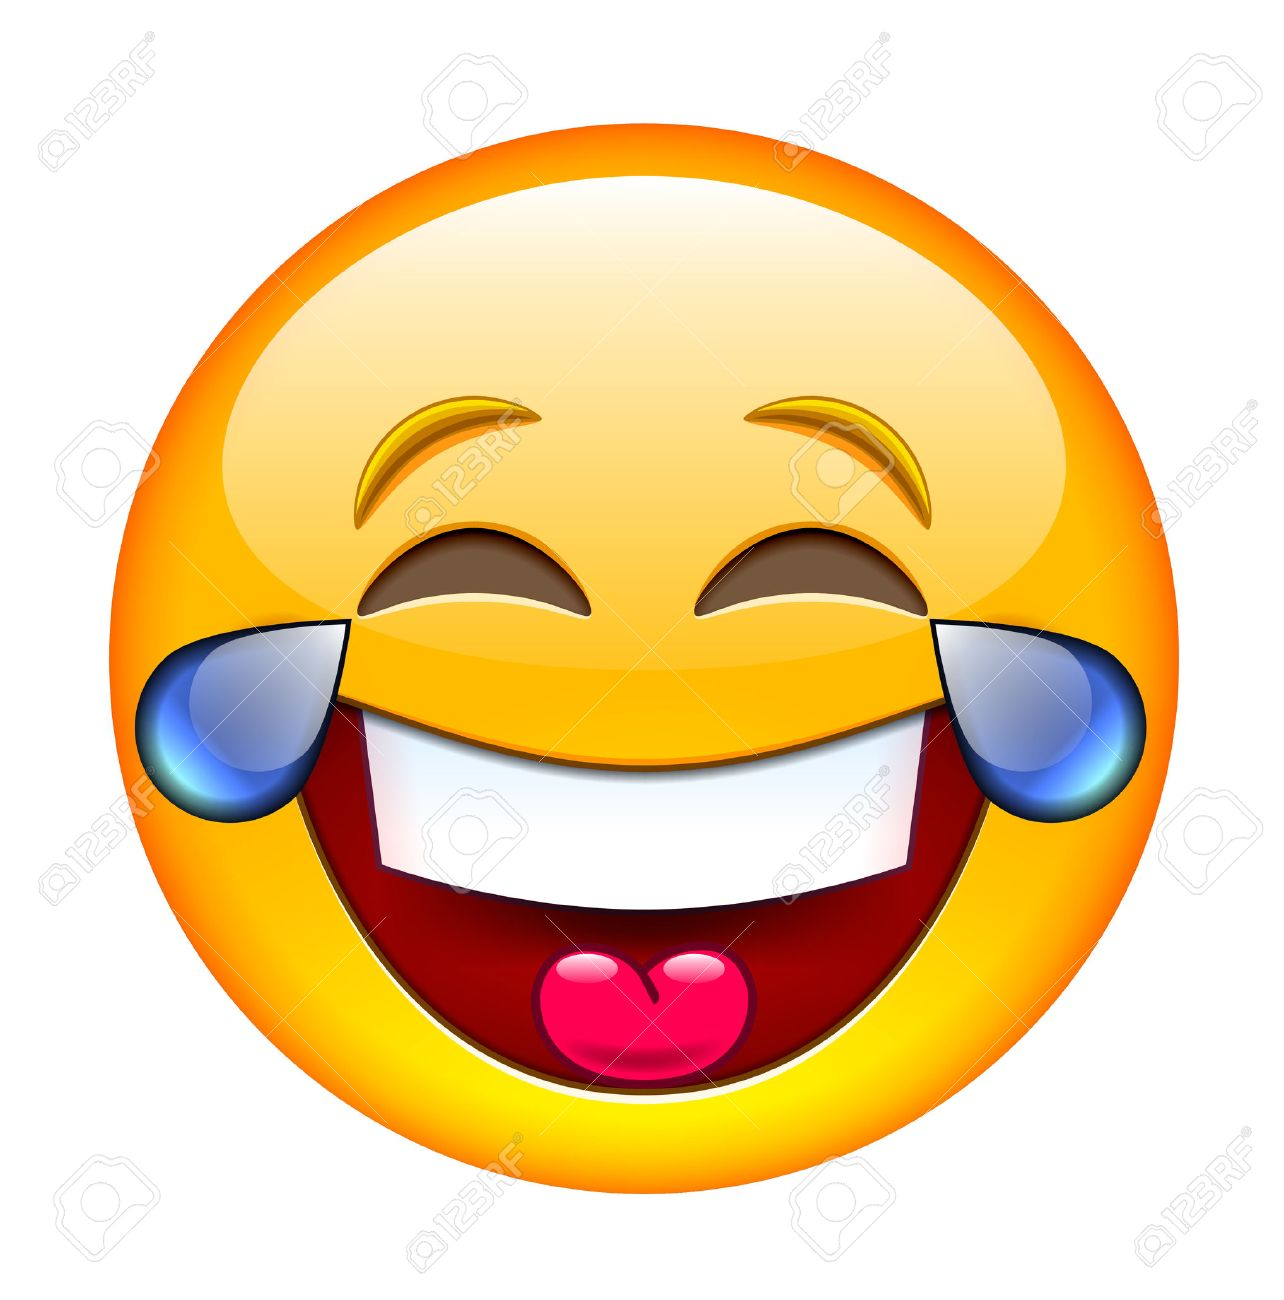 Laughing Emoticon with Tears. Isolated Illustration on White Background - 52958216